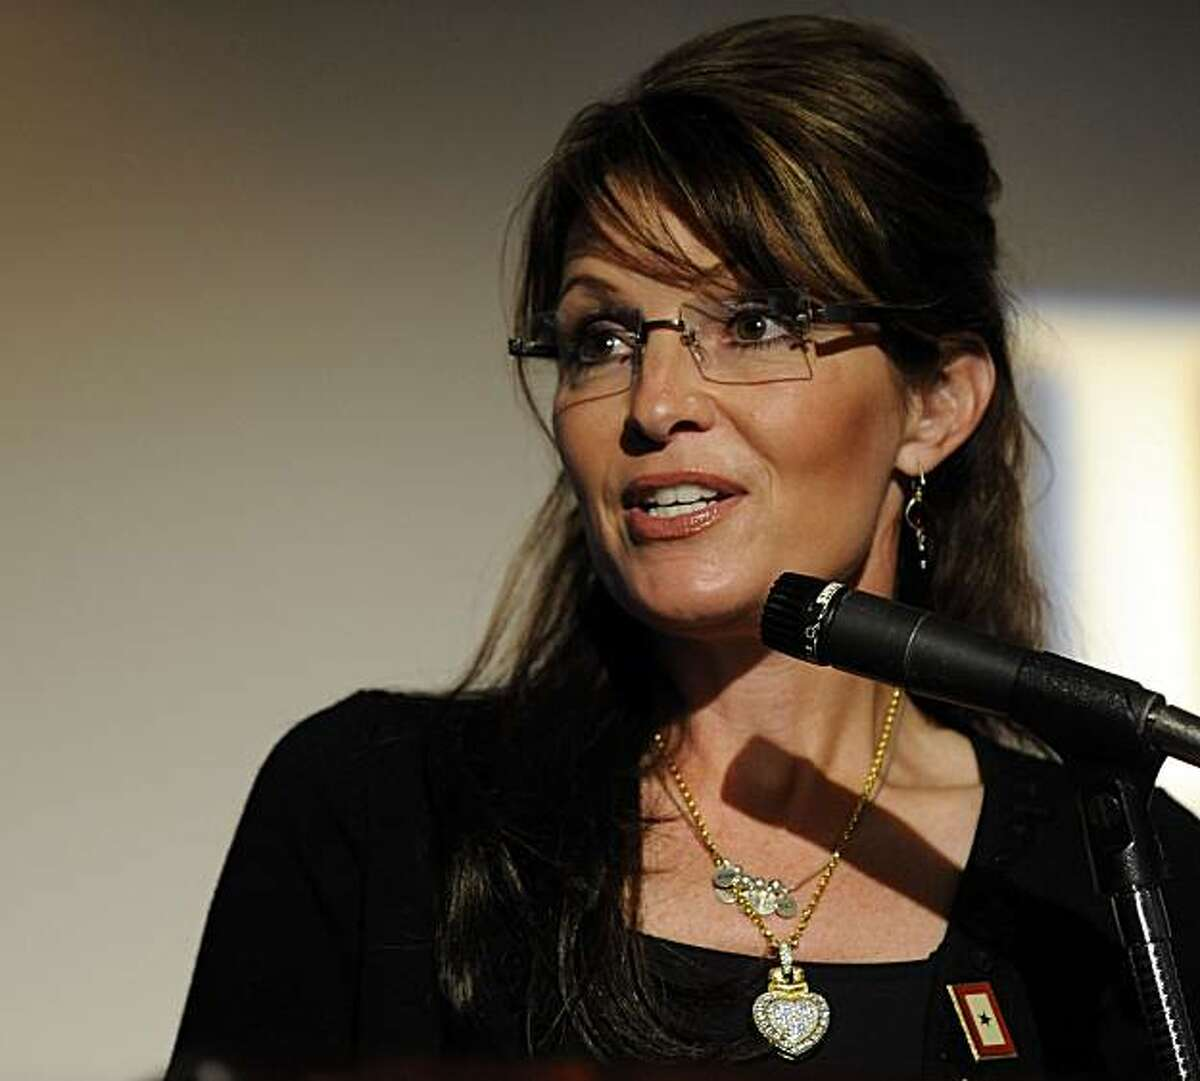 Alaska Governor Sarah Palin greets the crowd at the Independent Group Home Living gala in St. James, N.Y., Sunday June 7, 2009. Palin called for measures to make life better for people with developmental disabilities. (AP Photo/Newsday / Audrey C. Tiernan)